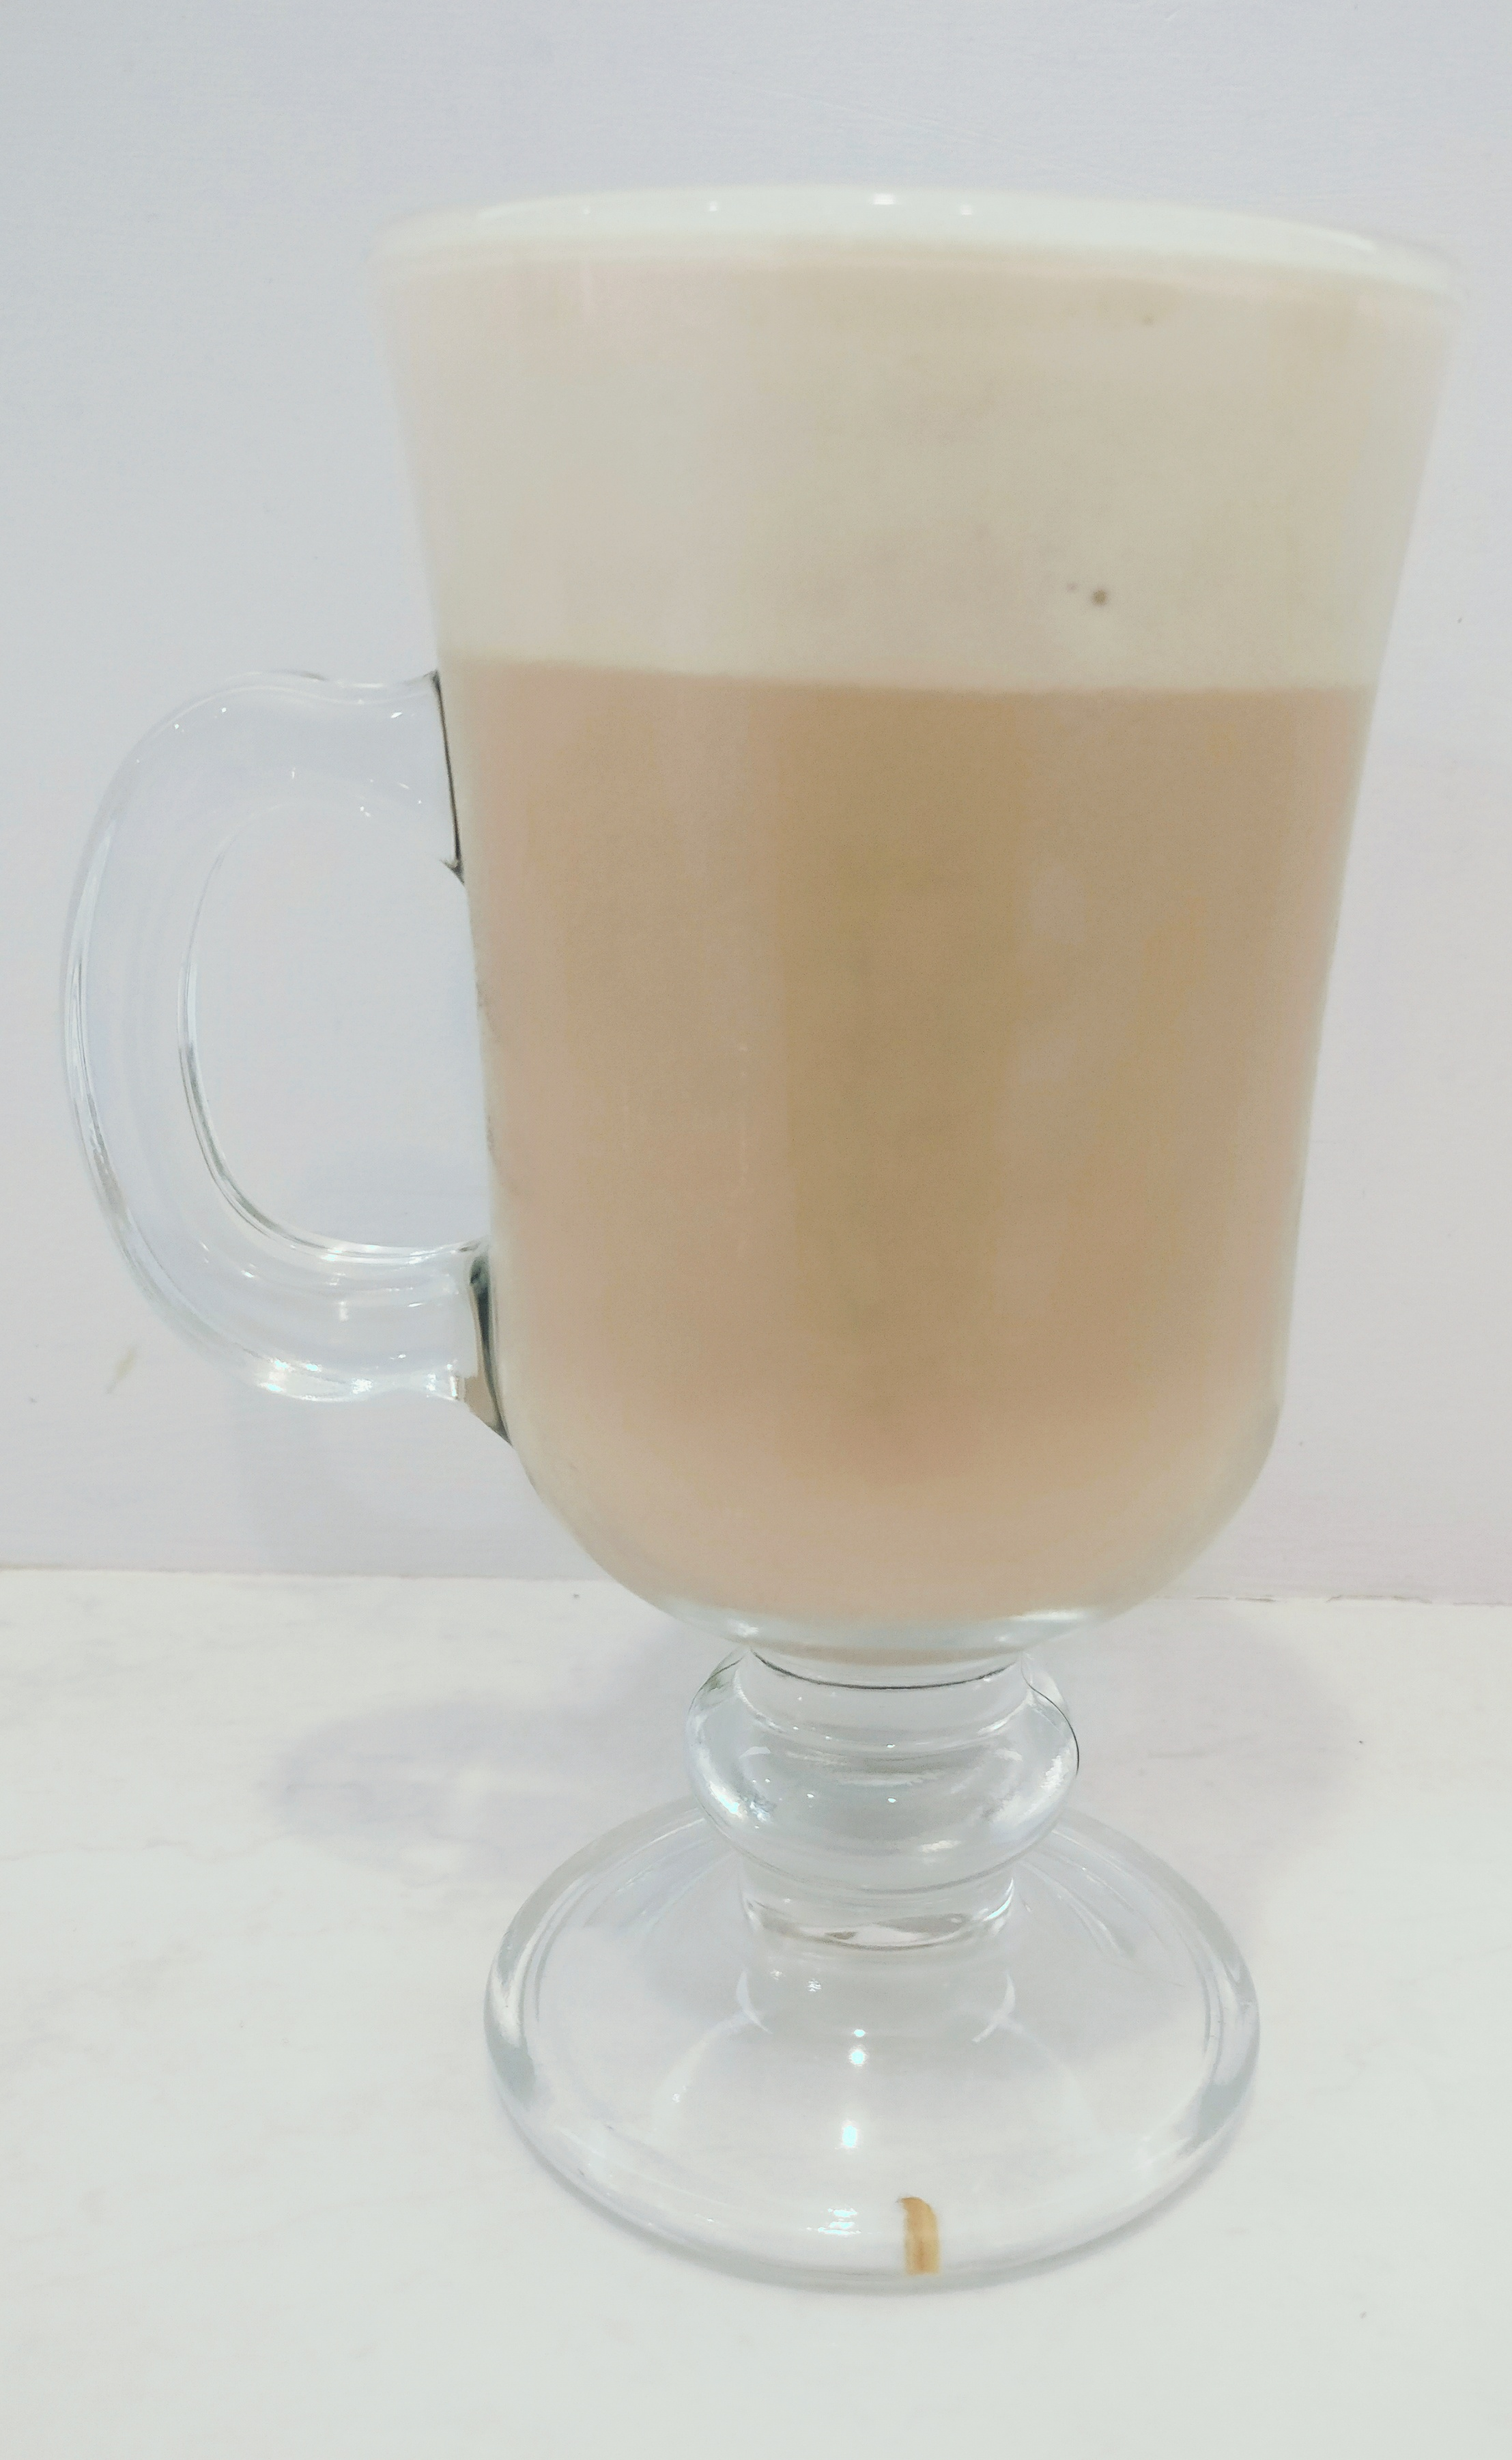 Frappe Coffee - Ingredients200ml Milk1C Ice1 Shot of nespresso coffee (chilled)1tsp SugarMethod1. Make the nespresso coffee, add sugar if you prefer and chill in the fridge (if using instant just dissolve 1tsp in a small amount of boiling water and chill)2. Add the milk, ice and coffee to a blender and blend until smooth**Optional extras; Caramel, Vanilla or Hazelnut syrup; ice cream; whipped cream on the top; chocolate sauce on the top